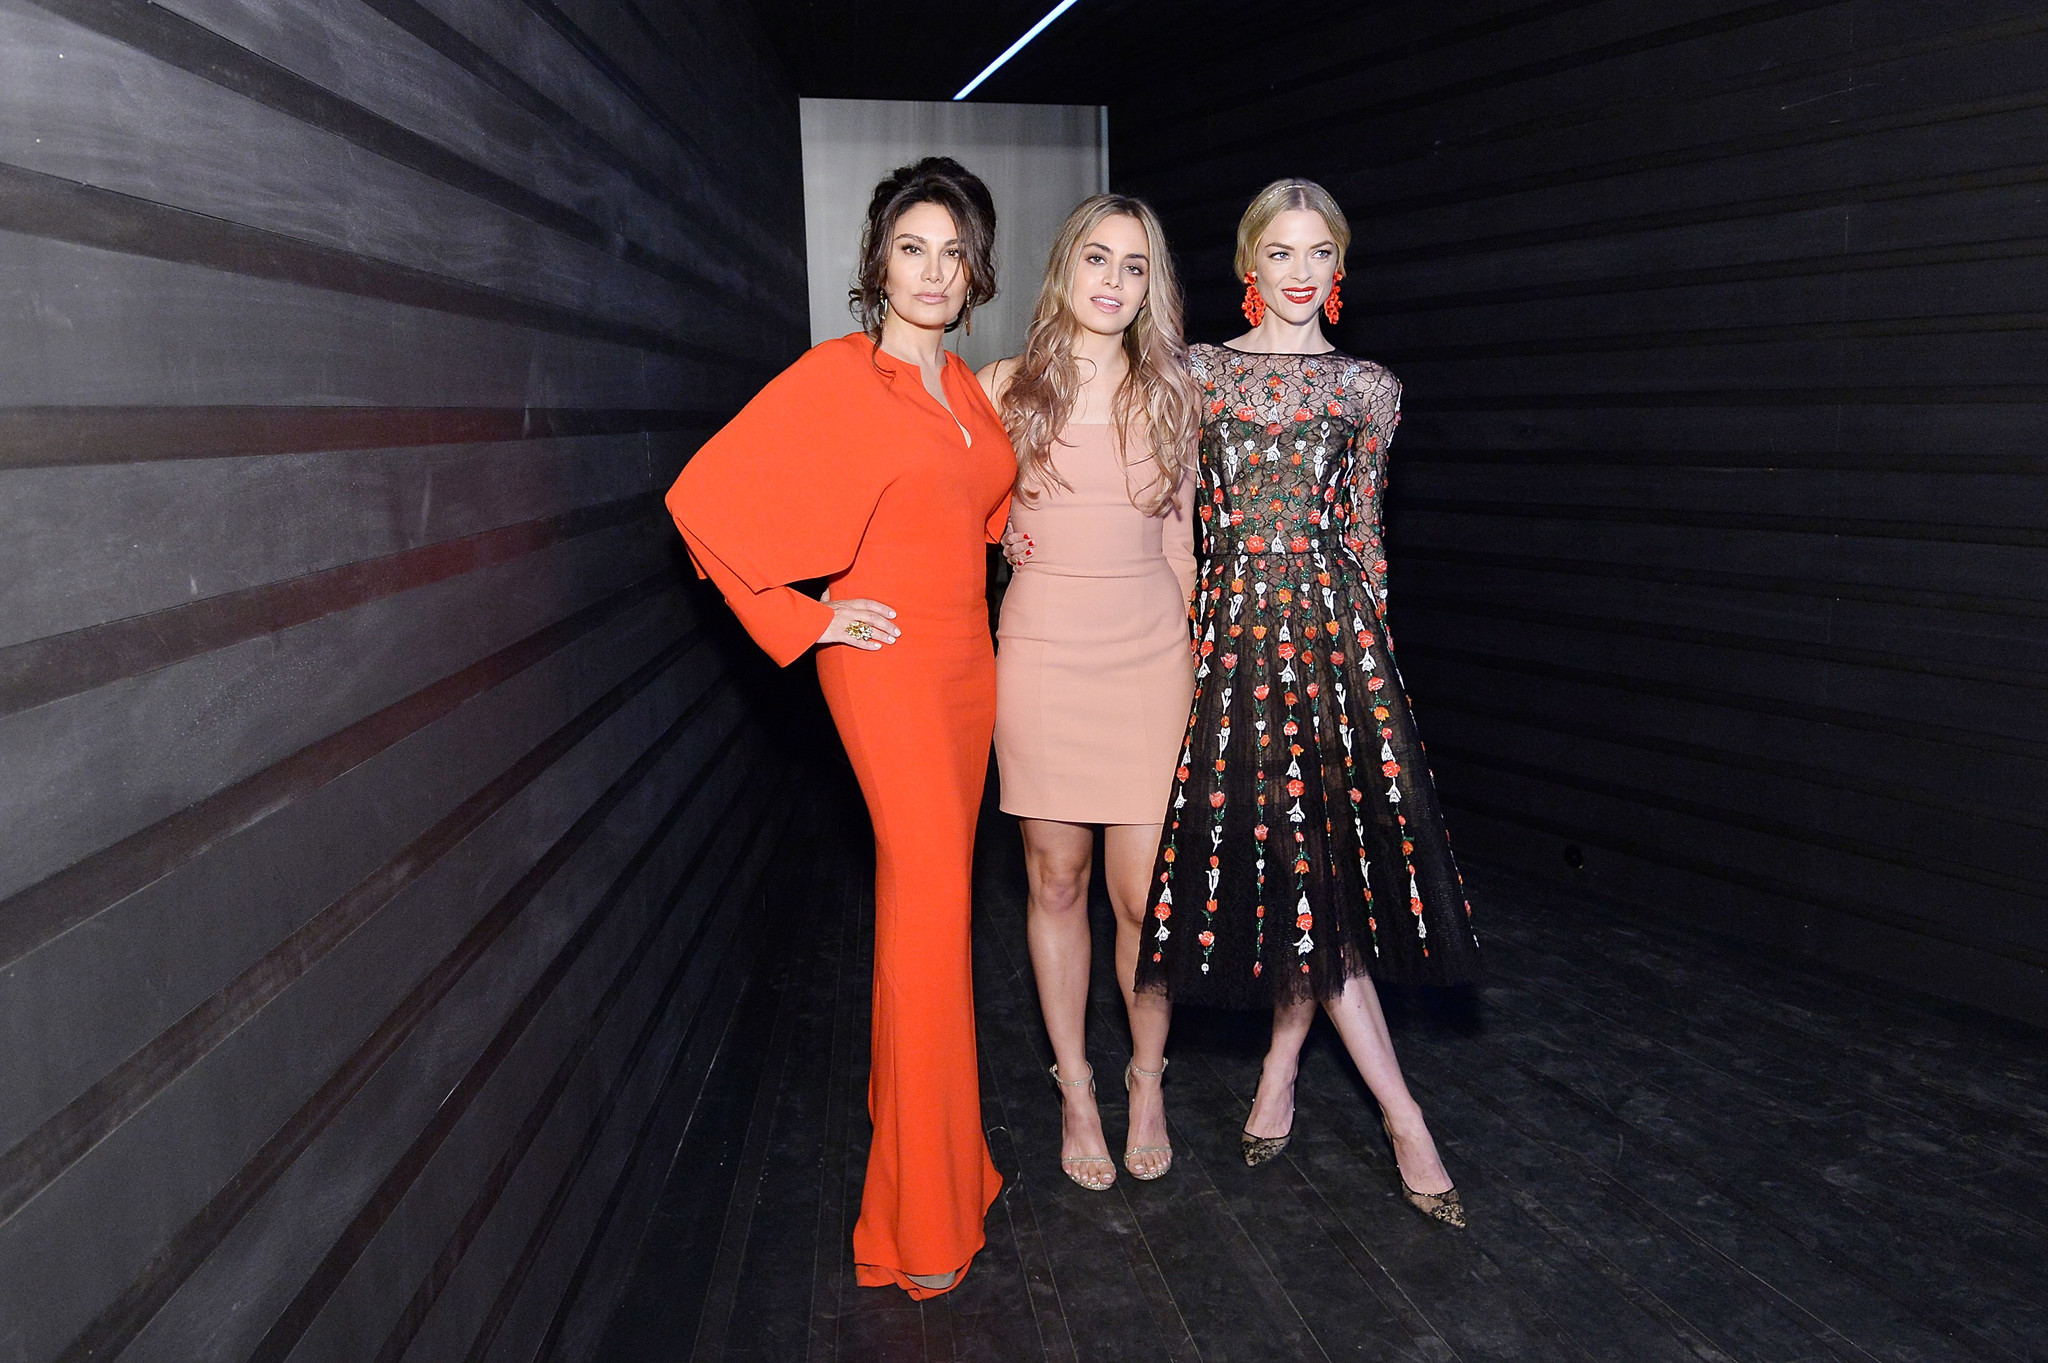 Erriette Lenas, left, Victoria Lenas and Jaime King.